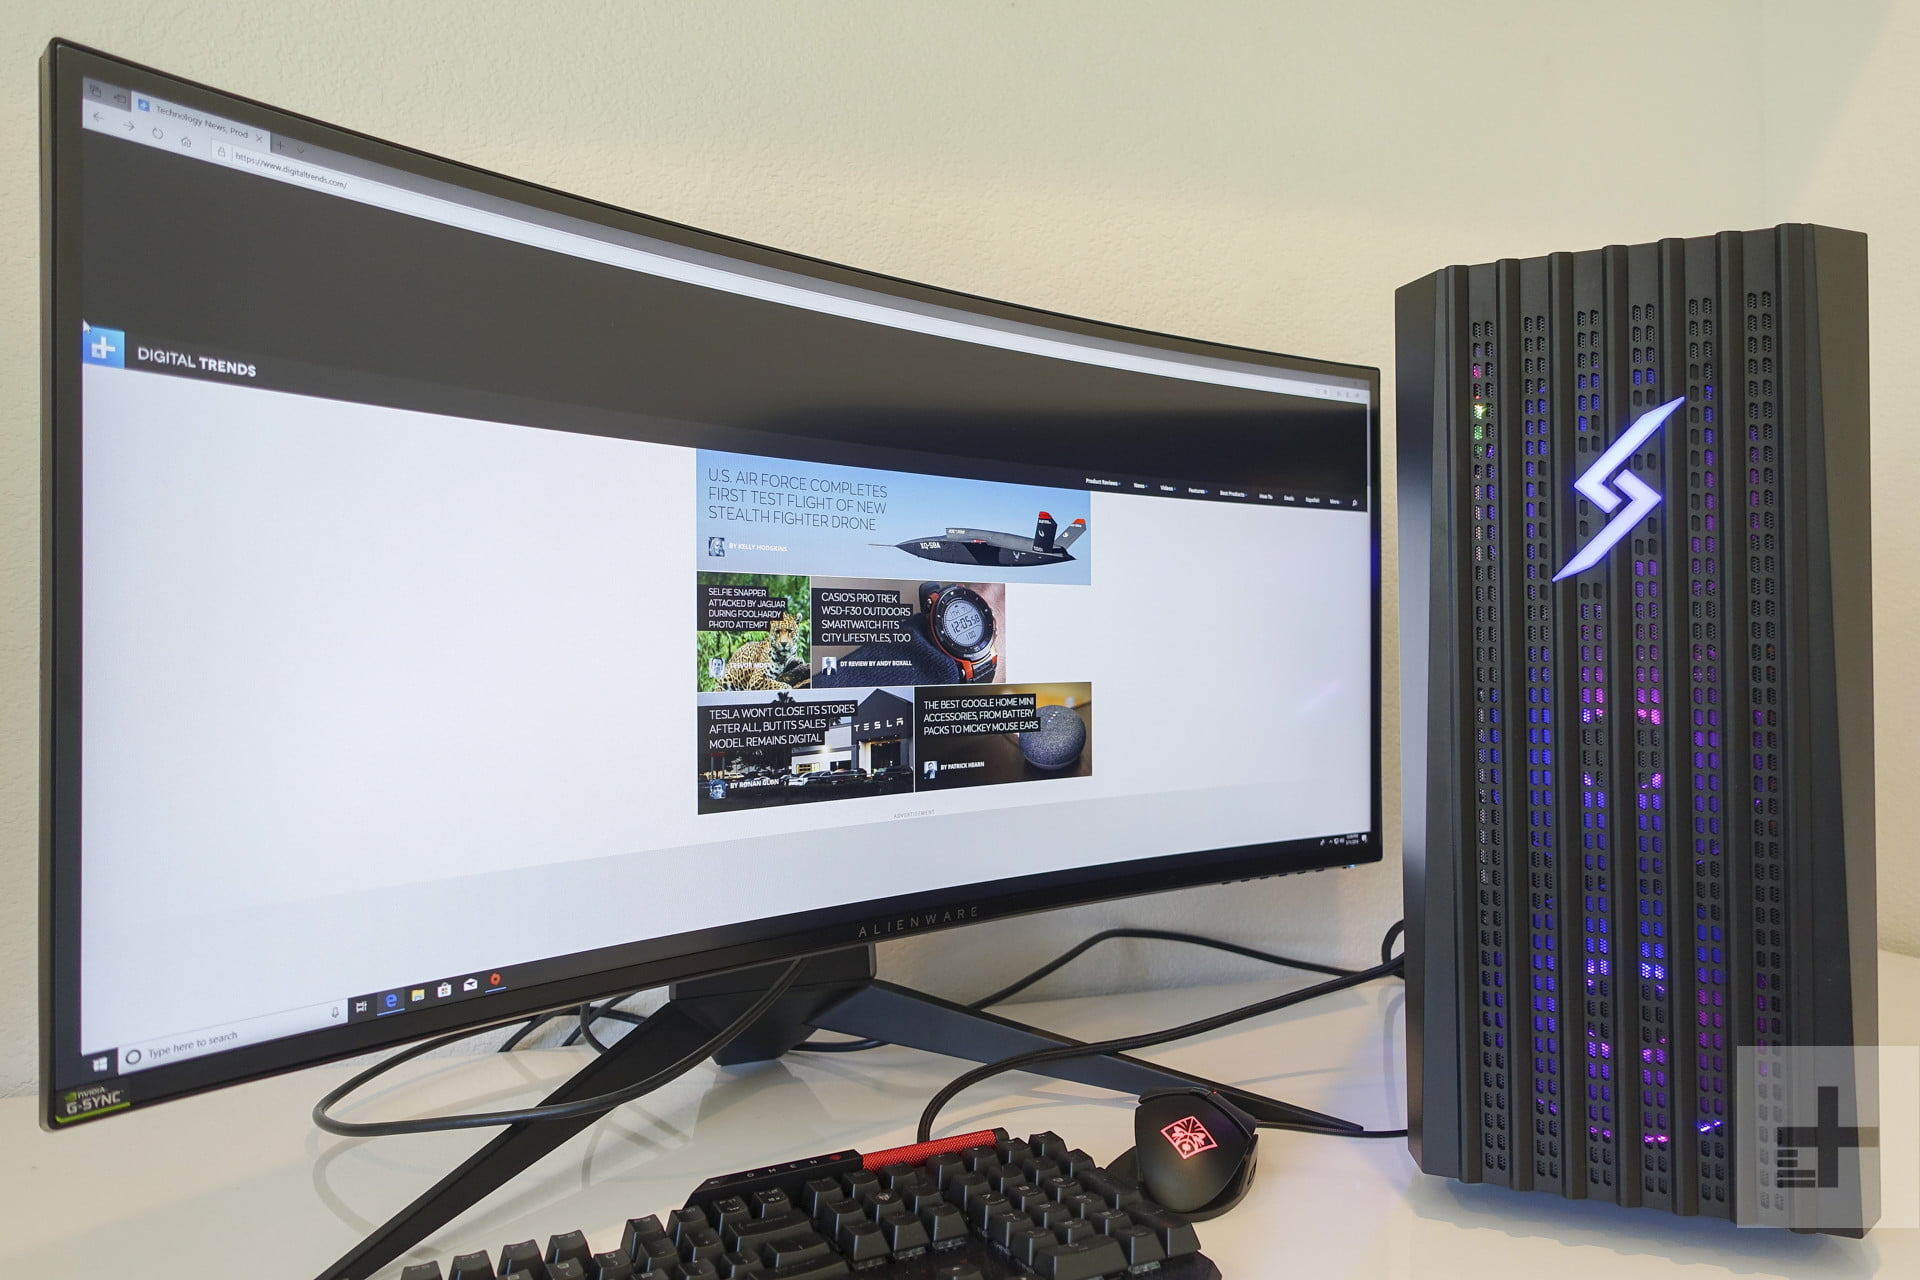 Digital Storm Lynx Review: A Prebuilt Gaming PC With Stylish